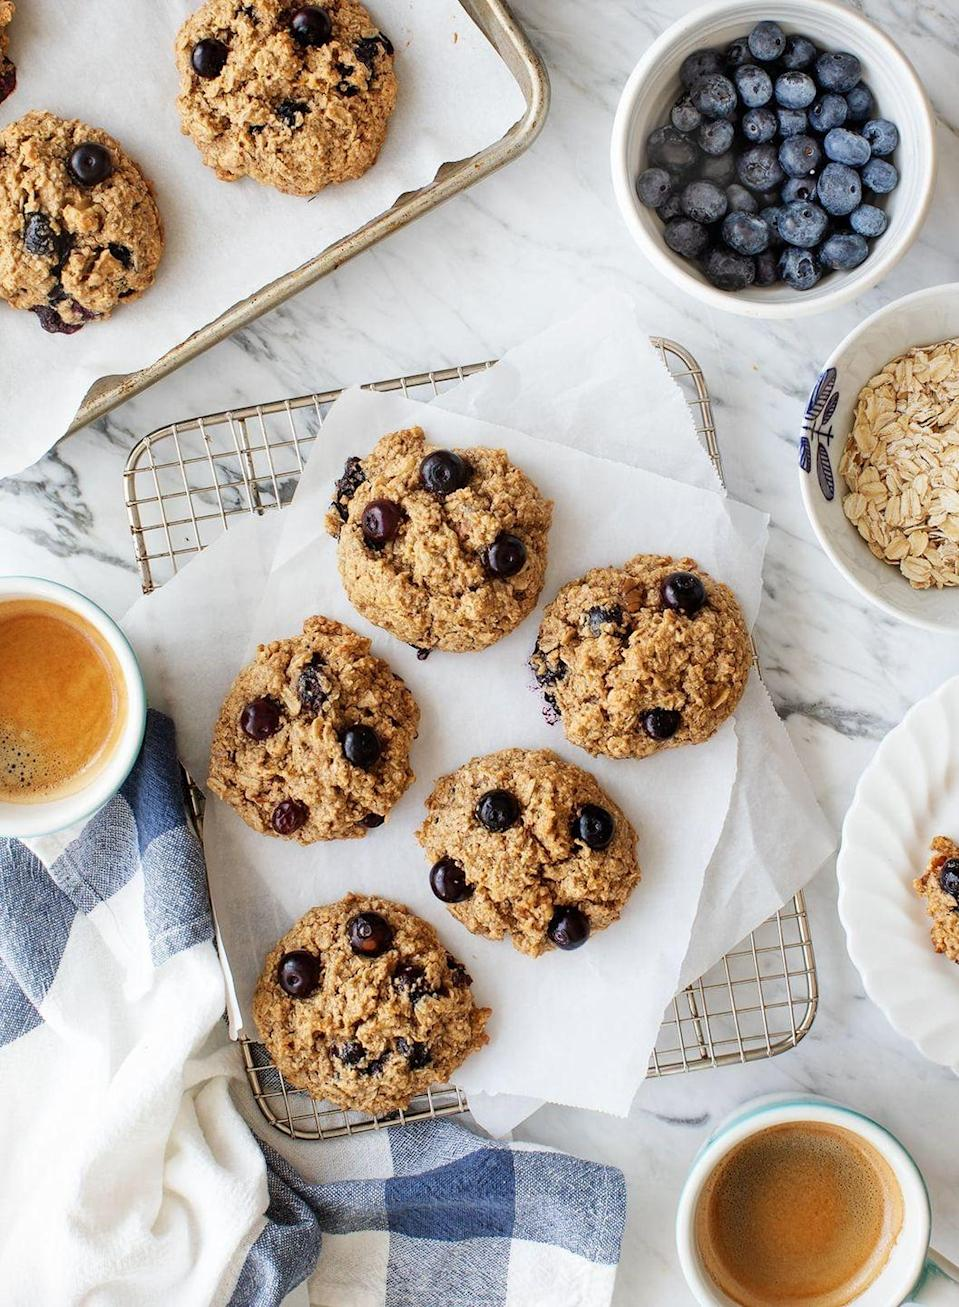 """<p>Cookies for breakfast? We're sold! These are vegan, gluten-free, and dairy-free, but they're also full of flavor thanks to almond butter, cinnamon, and maple syrup.</p><p><strong>Get the recipe at <a href=""""https://www.loveandlemons.com/oatmeal-breakfast-cookies/"""" rel=""""nofollow noopener"""" target=""""_blank"""" data-ylk=""""slk:Love and Lemons"""" class=""""link rapid-noclick-resp"""">Love and Lemons</a>.</strong></p><p><strong> <a class=""""link rapid-noclick-resp"""" href=""""https://go.redirectingat.com?id=74968X1596630&url=https%3A%2F%2Fwww.walmart.com%2Fsearch%2F%3Fquery%3Dsheet%2Bpan&sref=https%3A%2F%2Fwww.thepioneerwoman.com%2Ffood-cooking%2Fmeals-menus%2Fg34922086%2Fhealthy-breakfast-ideas%2F"""" rel=""""nofollow noopener"""" target=""""_blank"""" data-ylk=""""slk:SHOP SHEET PANS"""">SHOP SHEET PANS</a><br></strong></p>"""